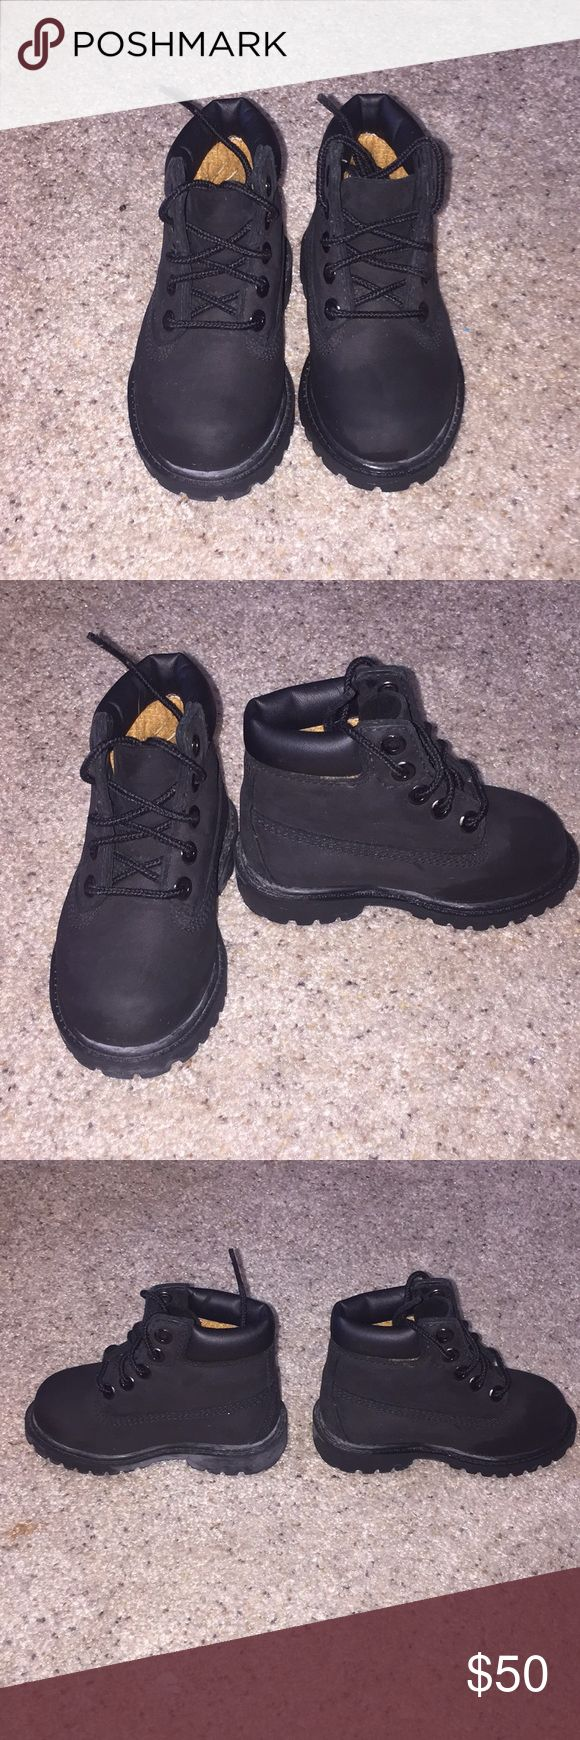 Kids Timberland boots Timberland boots size 5 black. Prefect condition. No box Timberland Shoes Boots